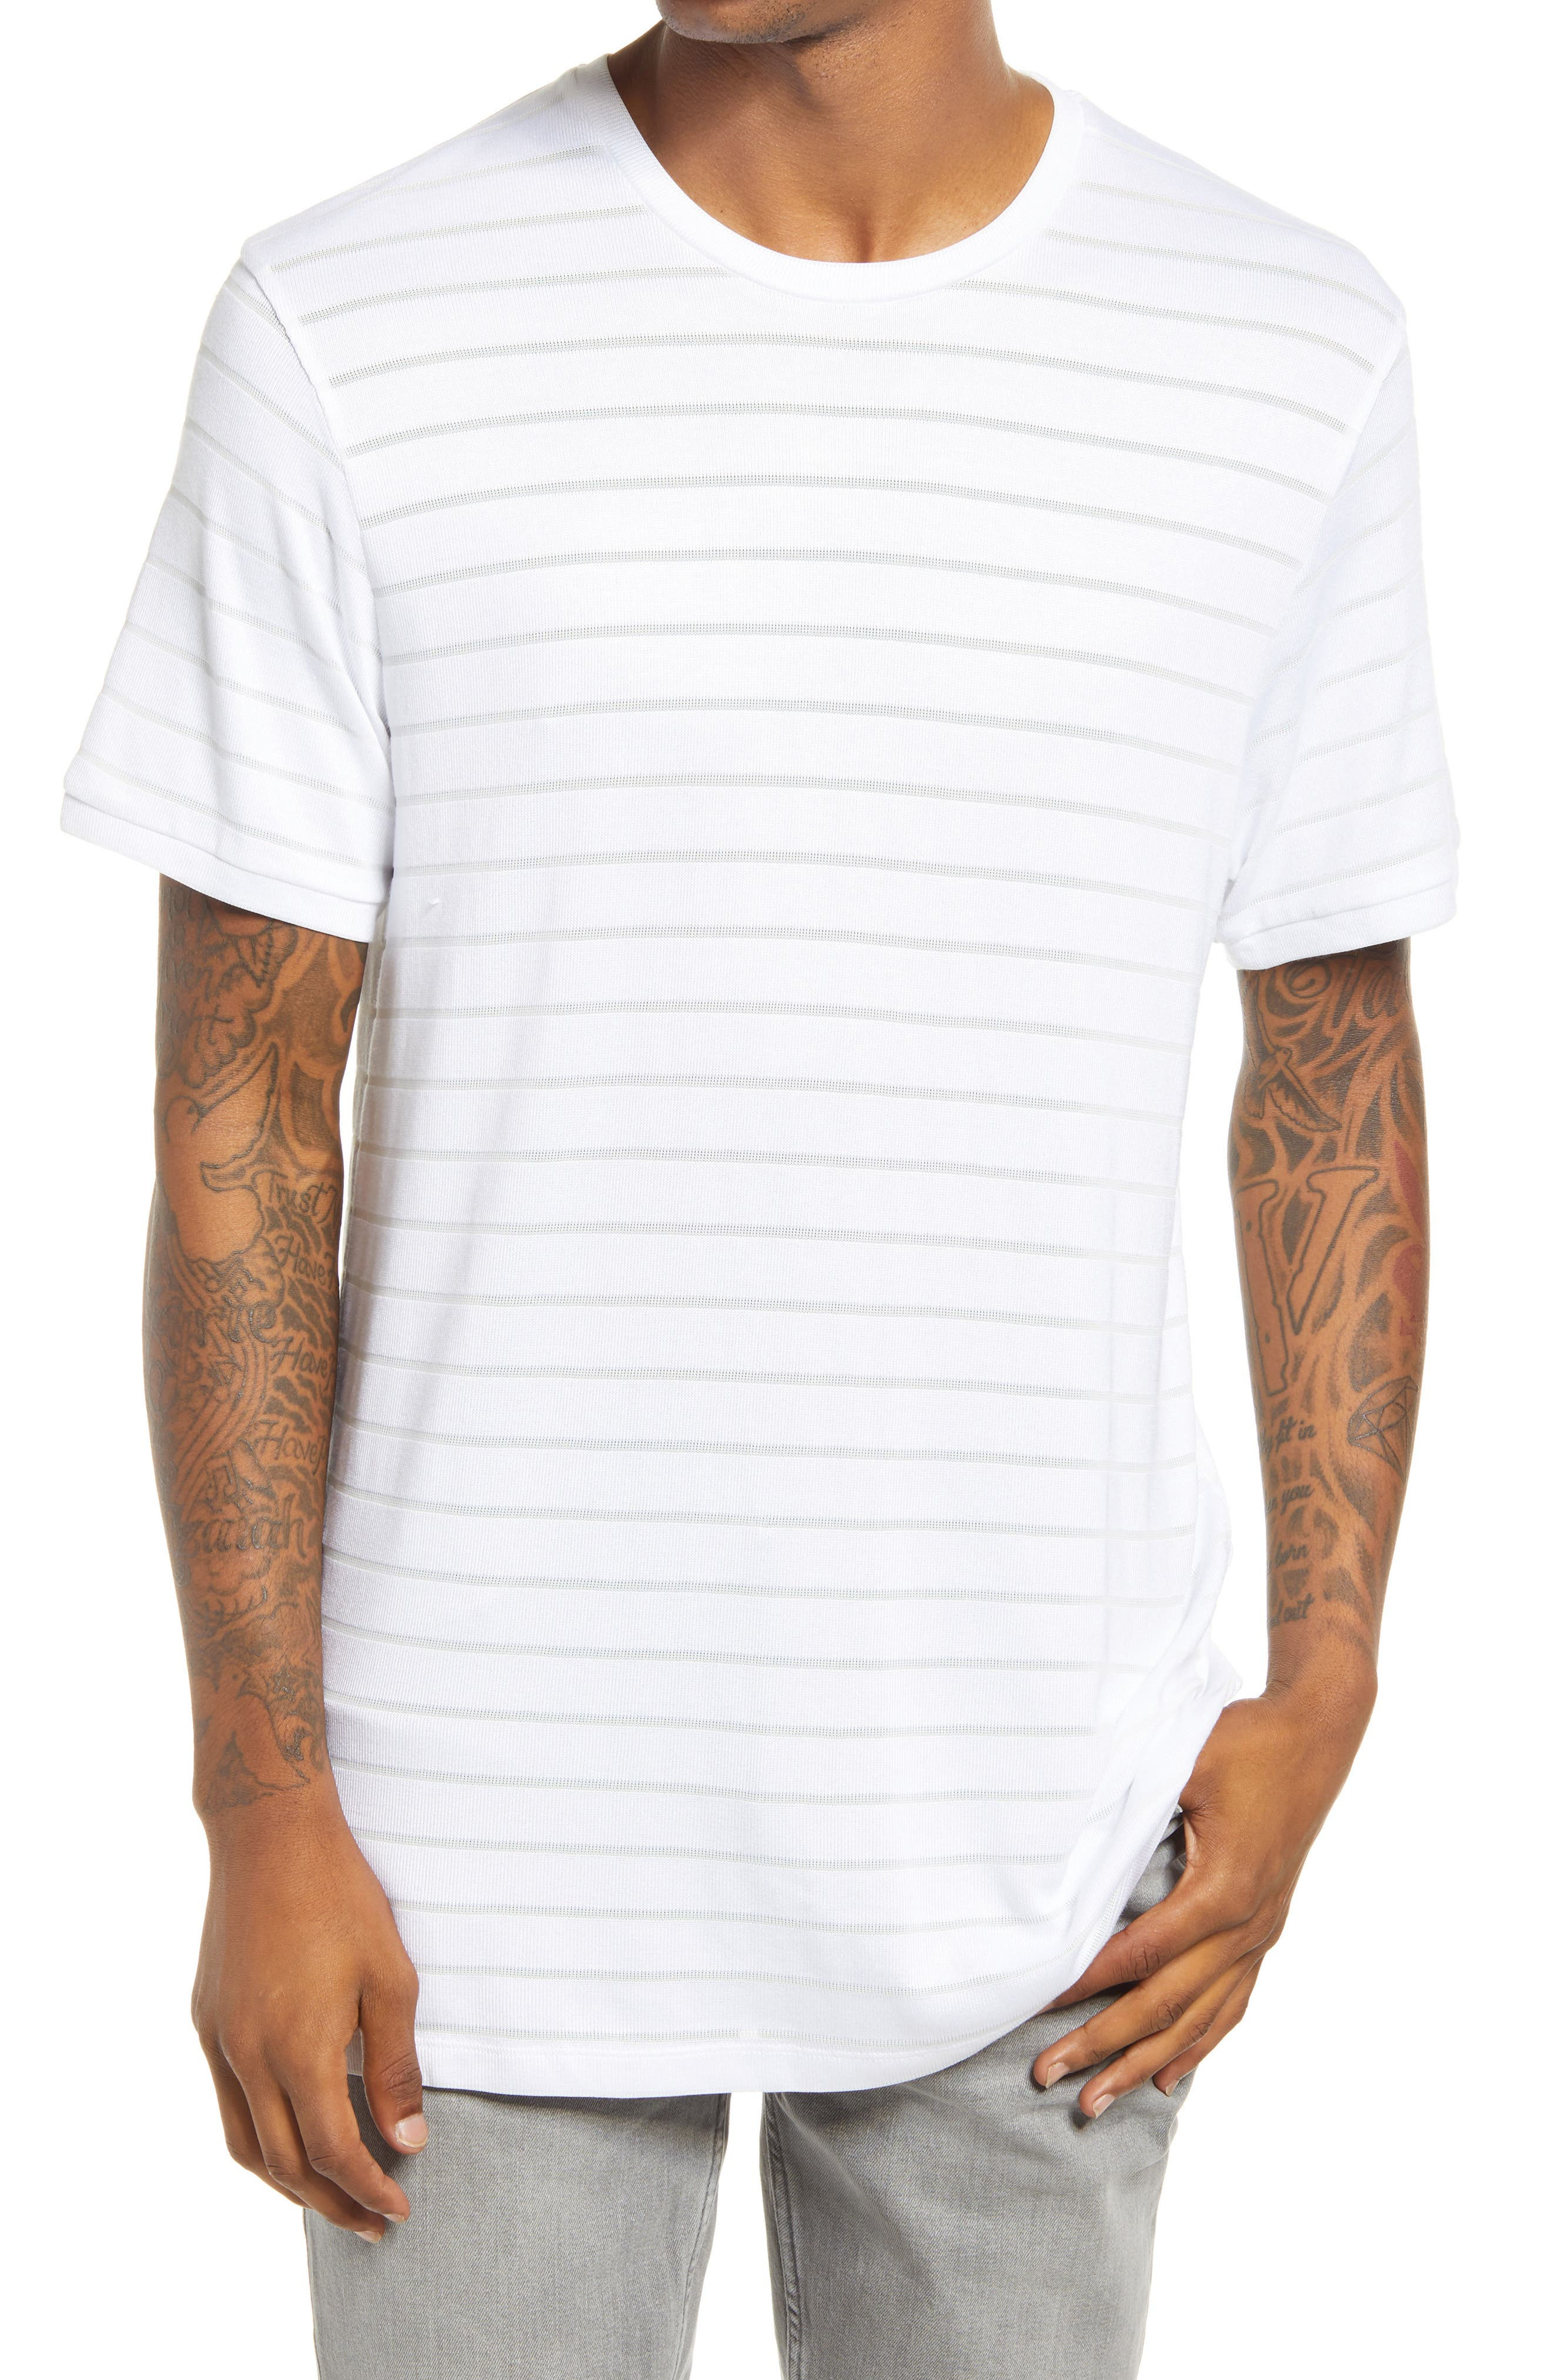 Eye-catching stripes enliven this slouchy drop-shoulder T-shirt that\\\'s ready for the weekend. Style Name: Topman Stripe T-Shirt. Style Number: 6096087. Available in stores.